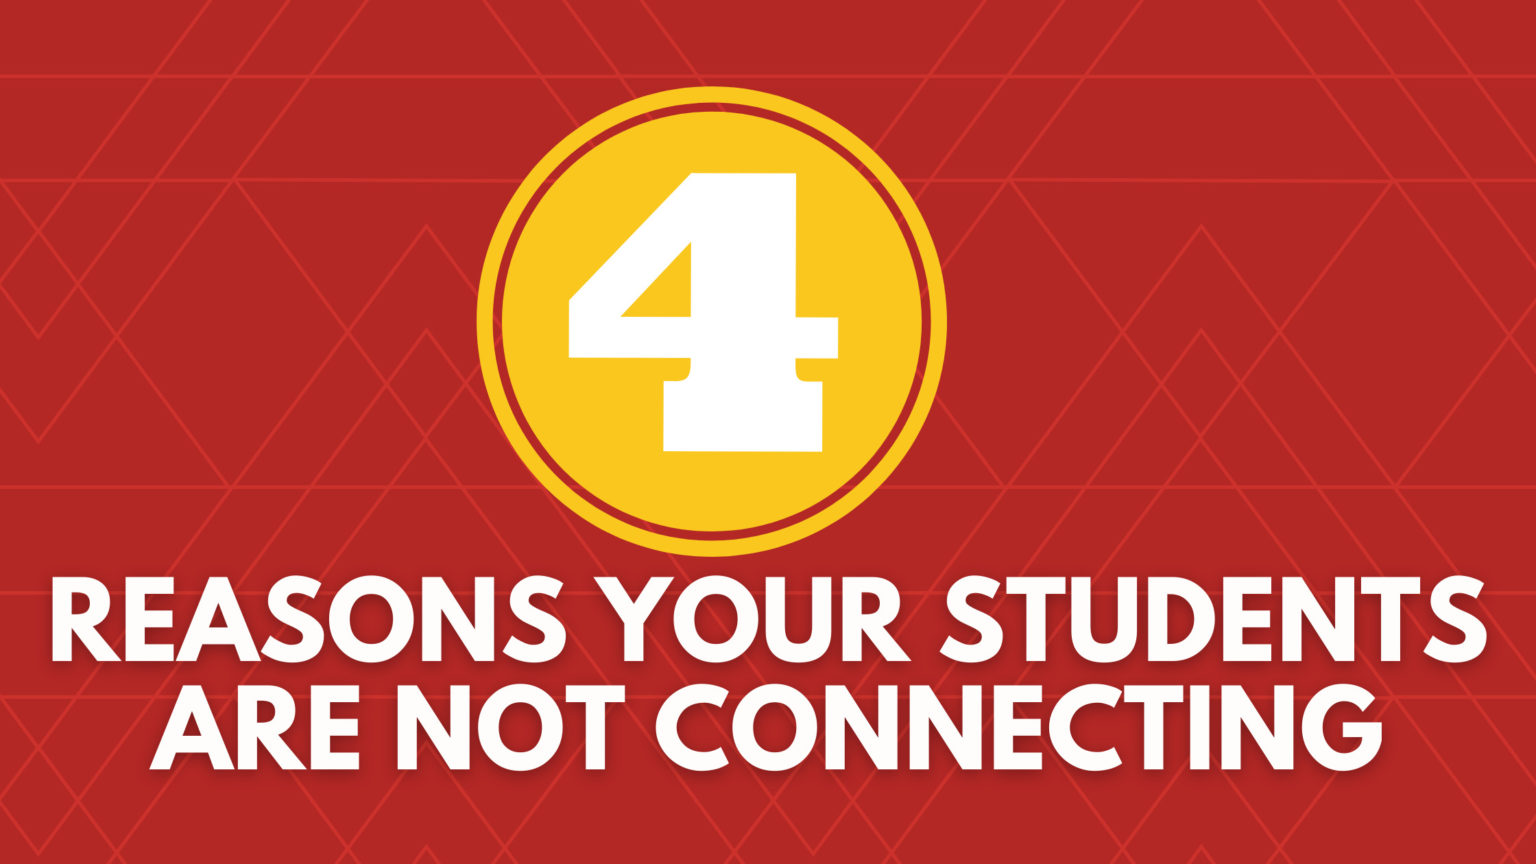 students are not connecting